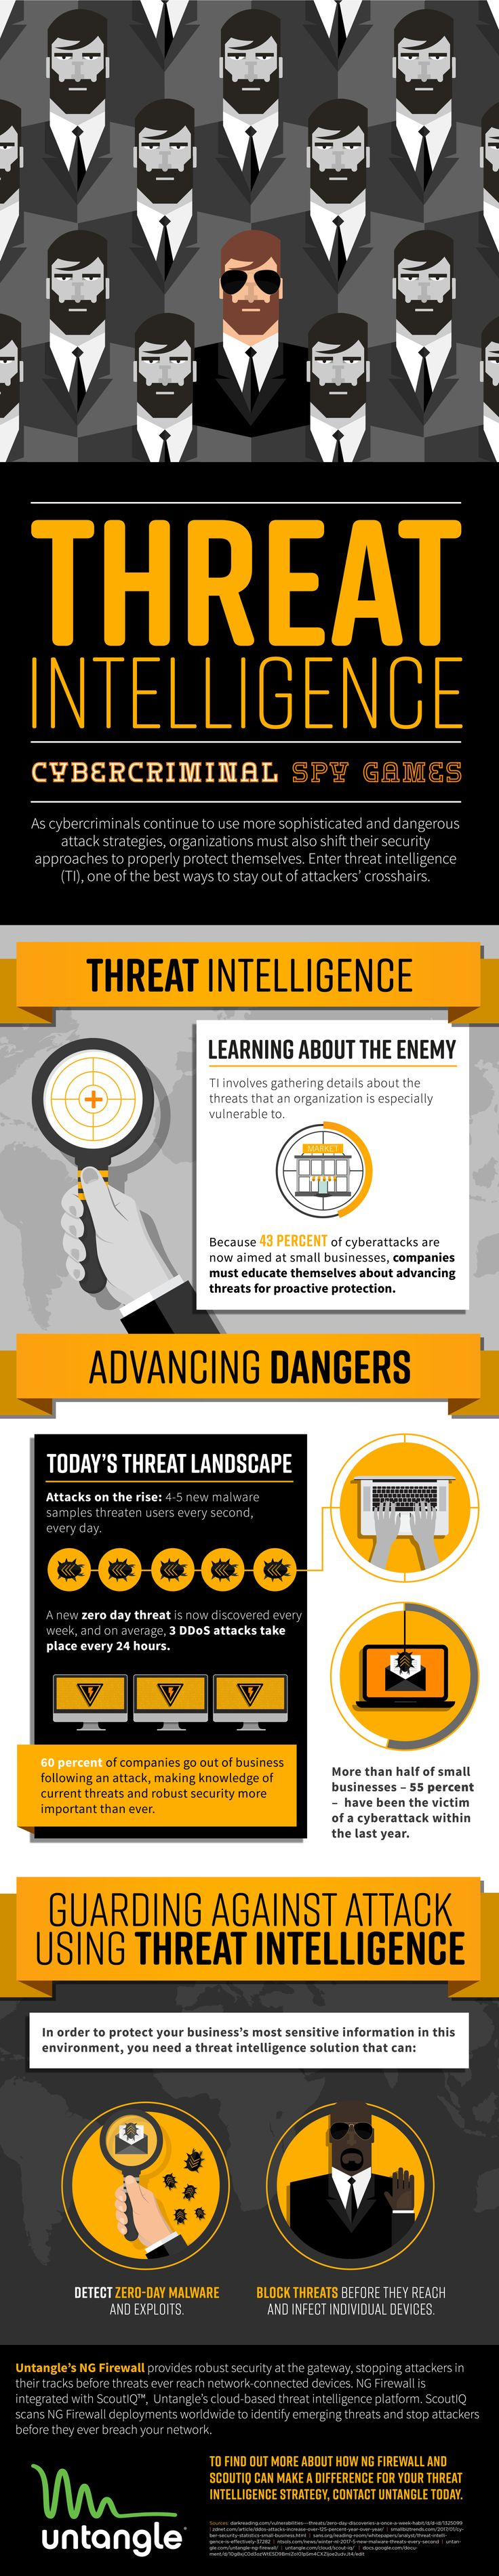 Cyber Threat Intelligence Infographic